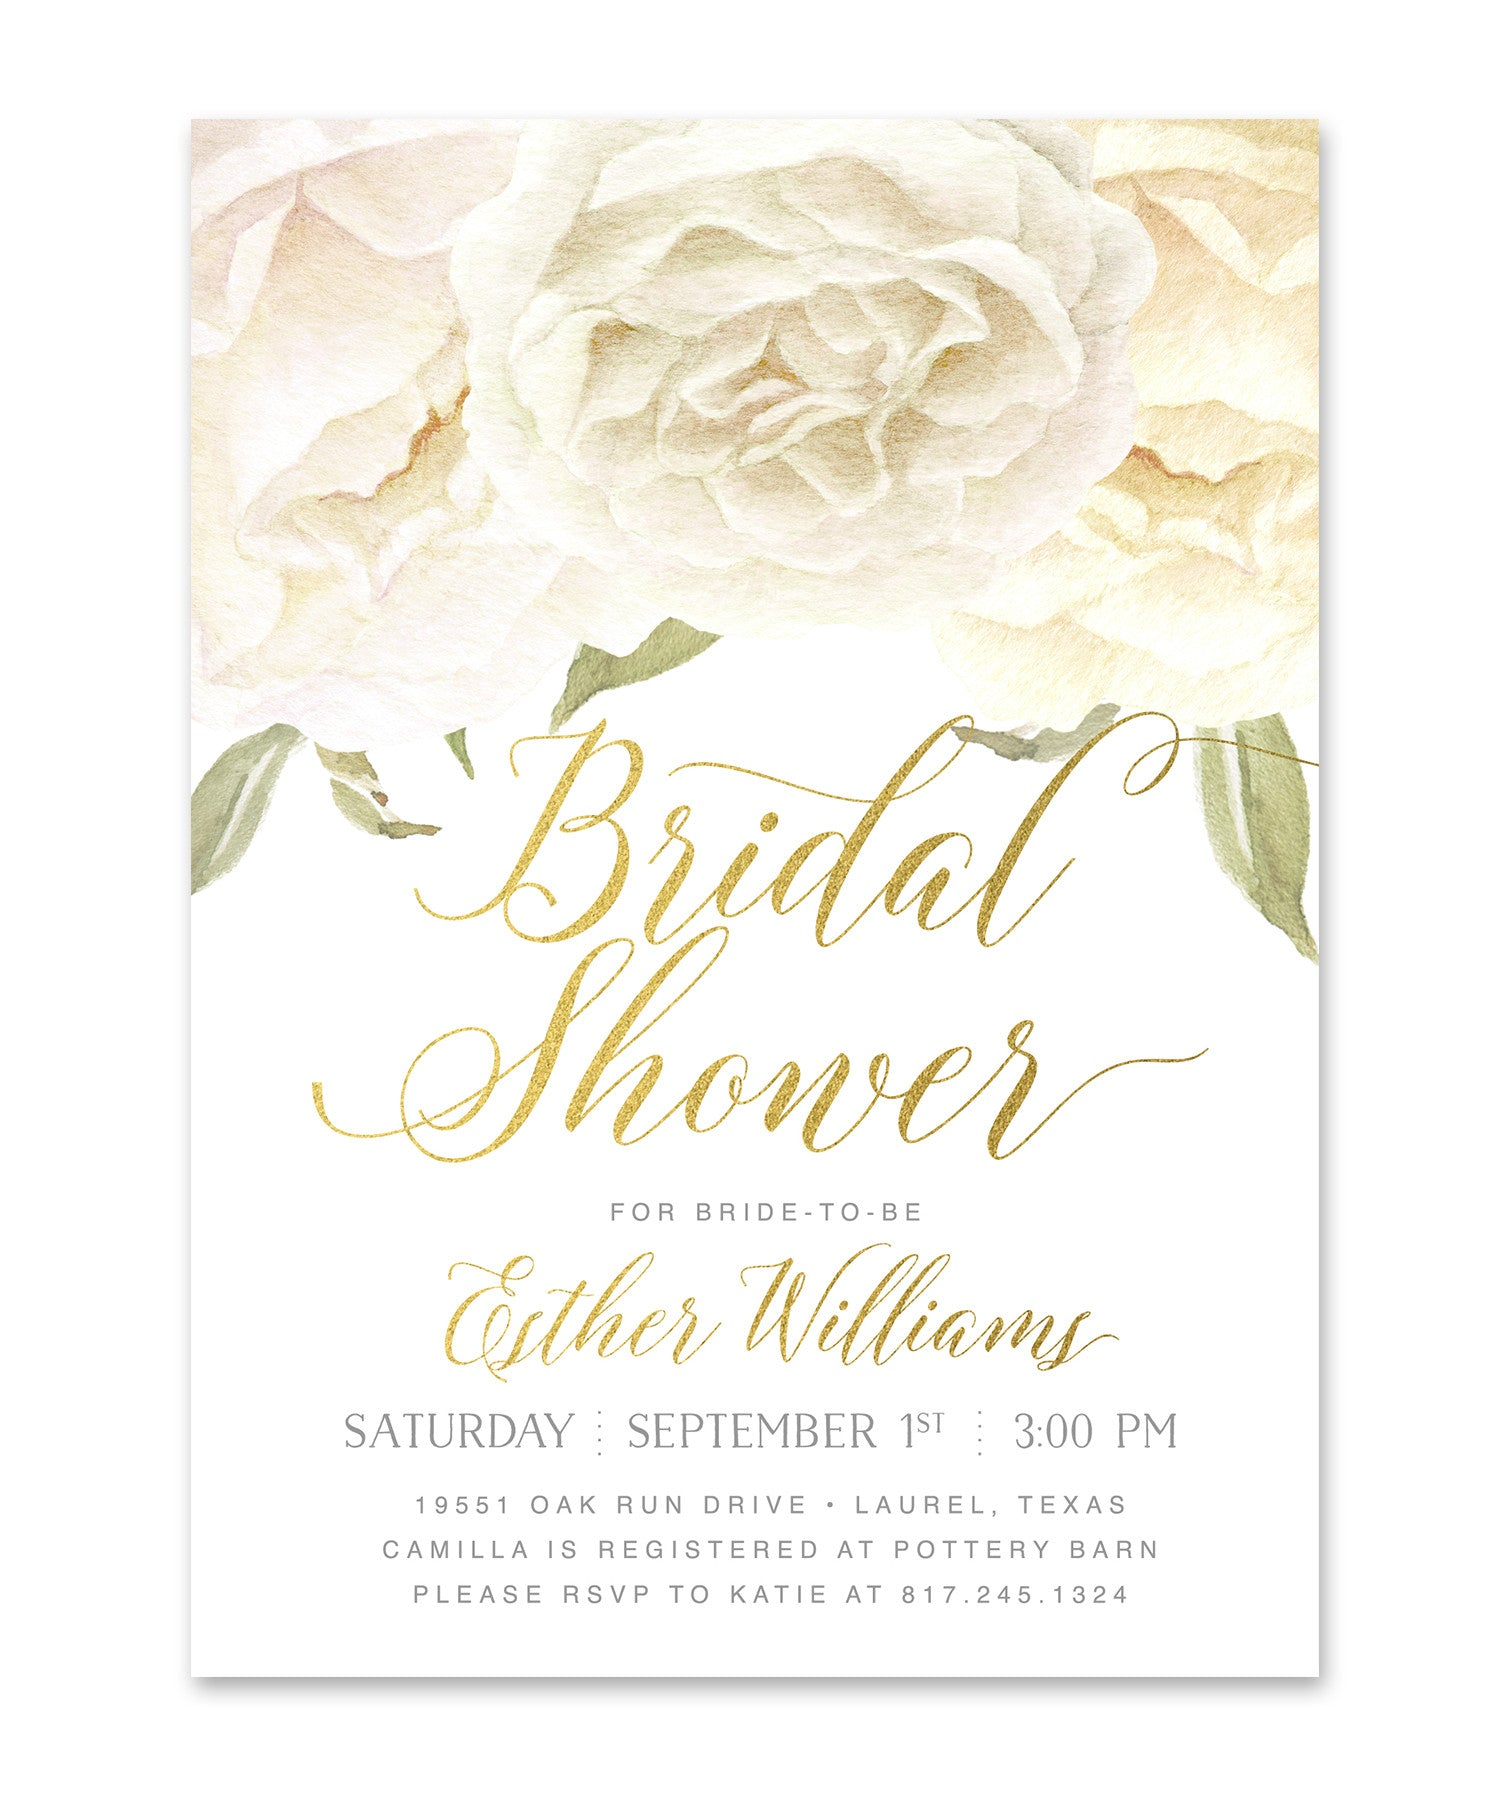 ... Everly: Bridal Shower Invitation, White Roses U0026 Gold ...